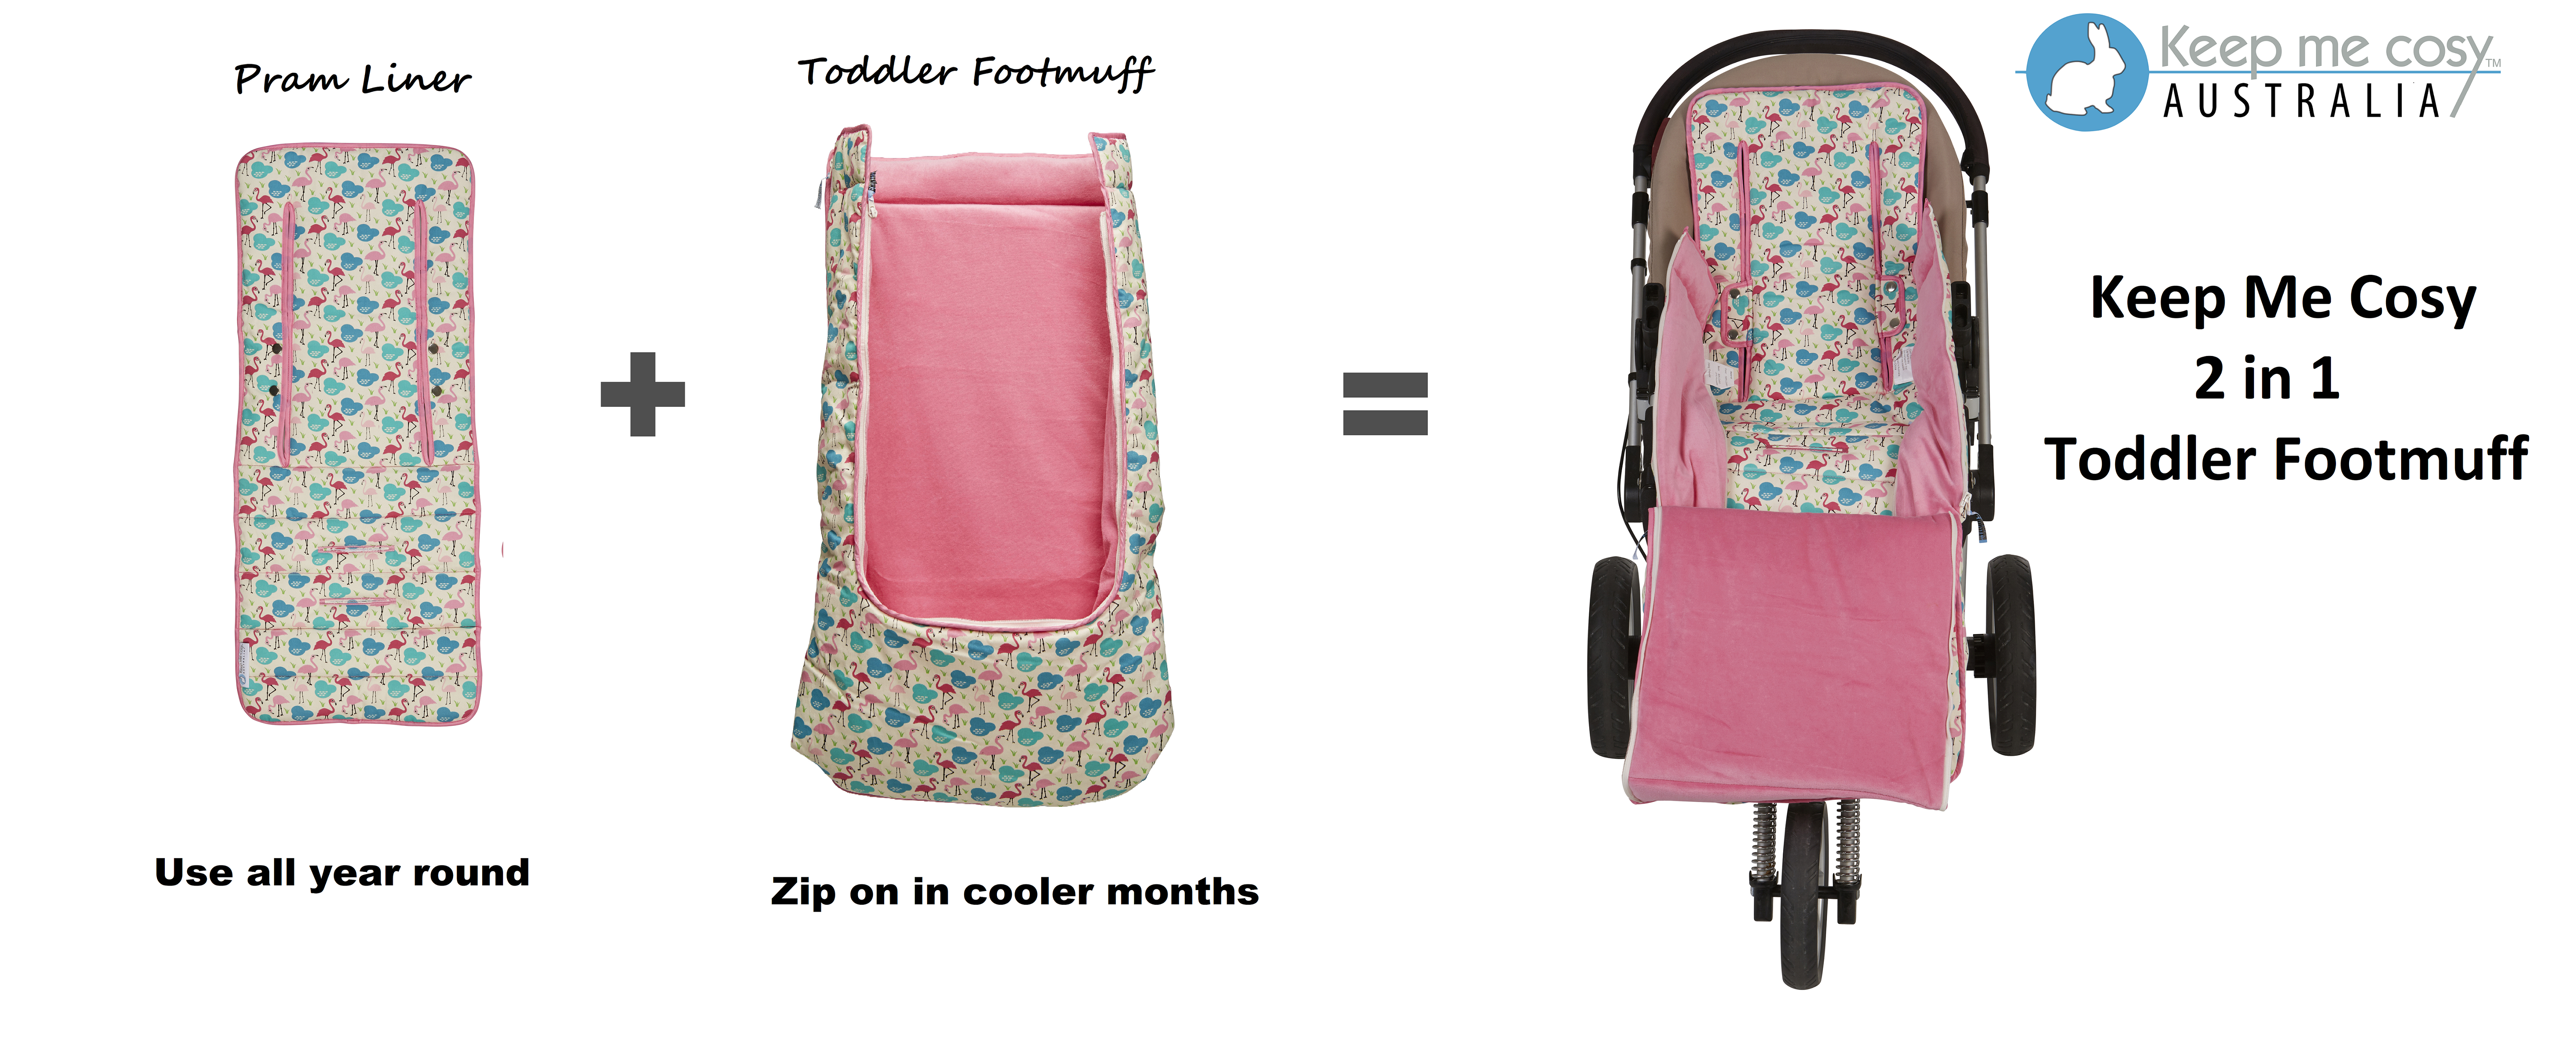 Aqua Feather Universal Reversible Cotton Baby Pram Liner by Keep Me Cosy™